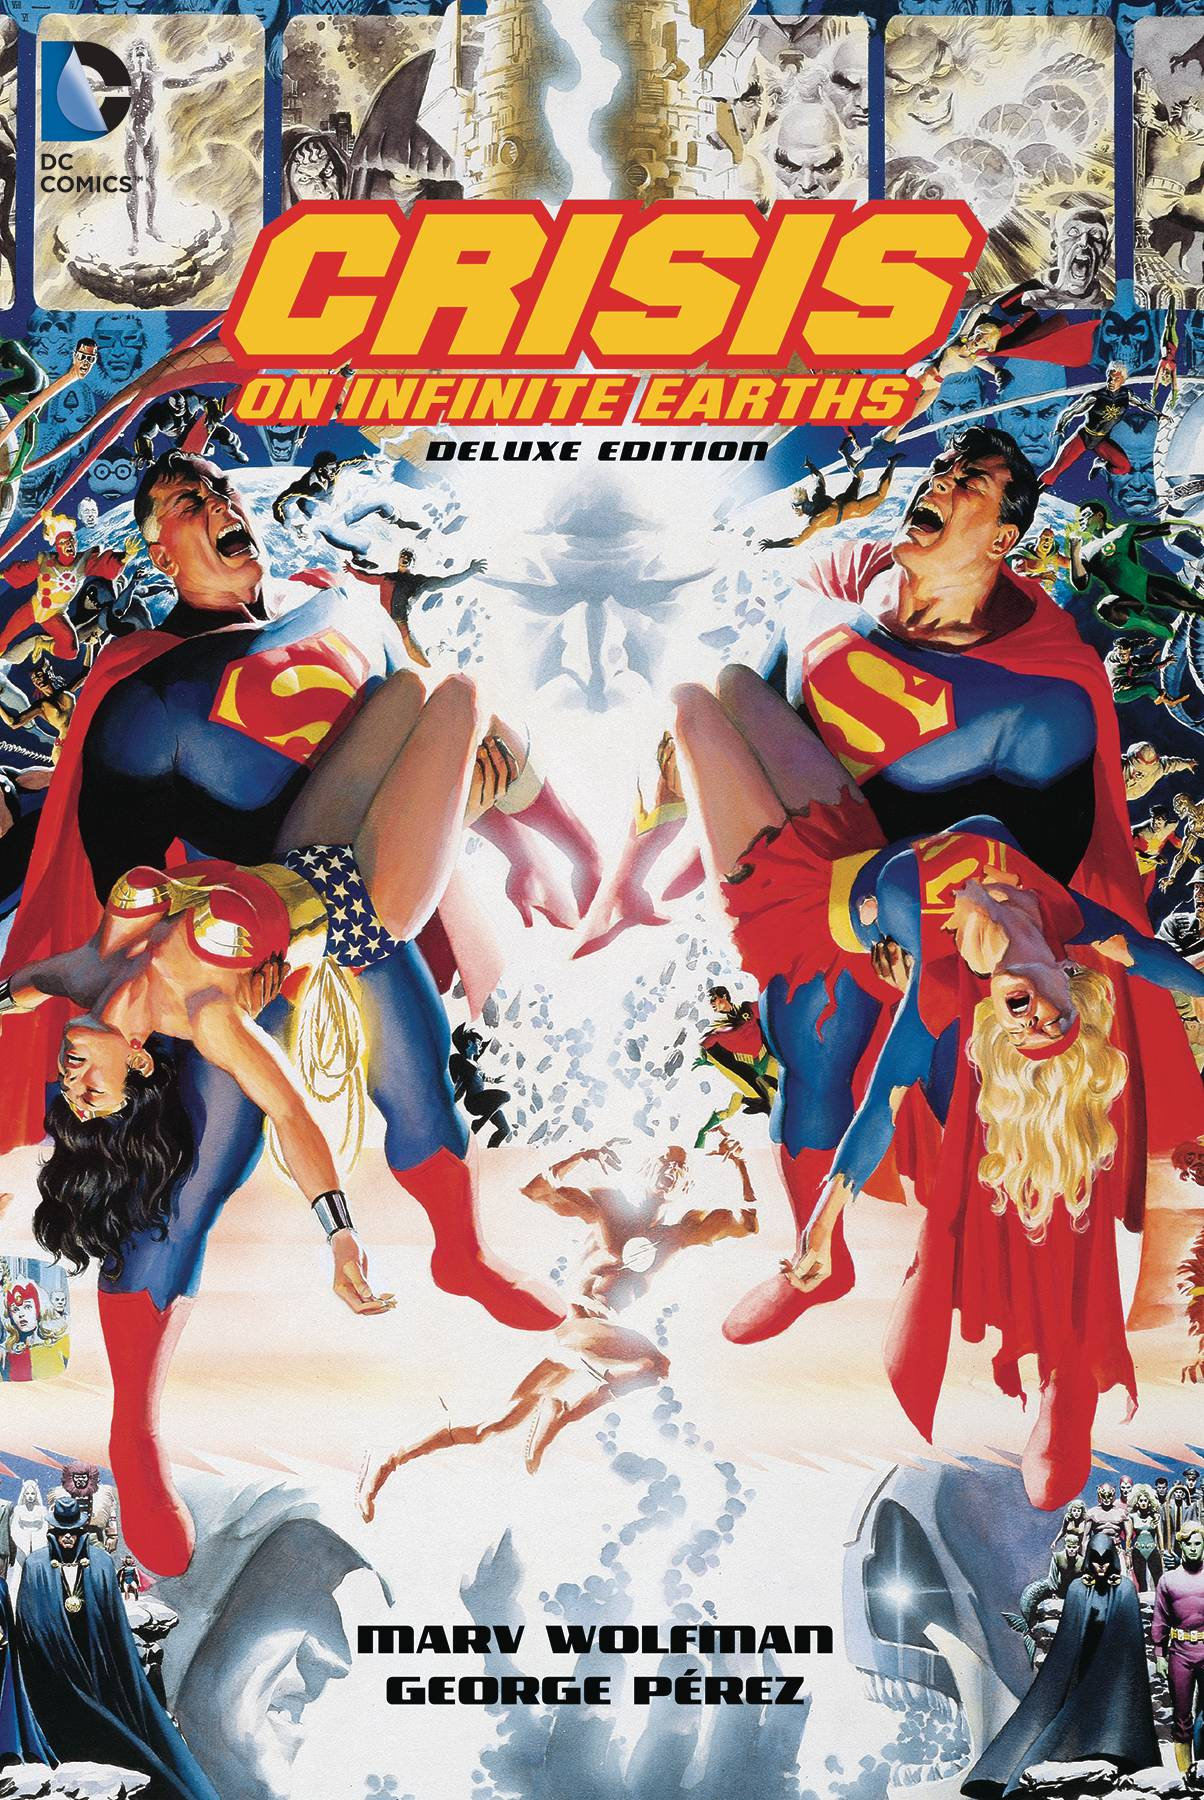 CRISIS ON INFINITE EARTHS 35TH ANNIV DLX ED HC